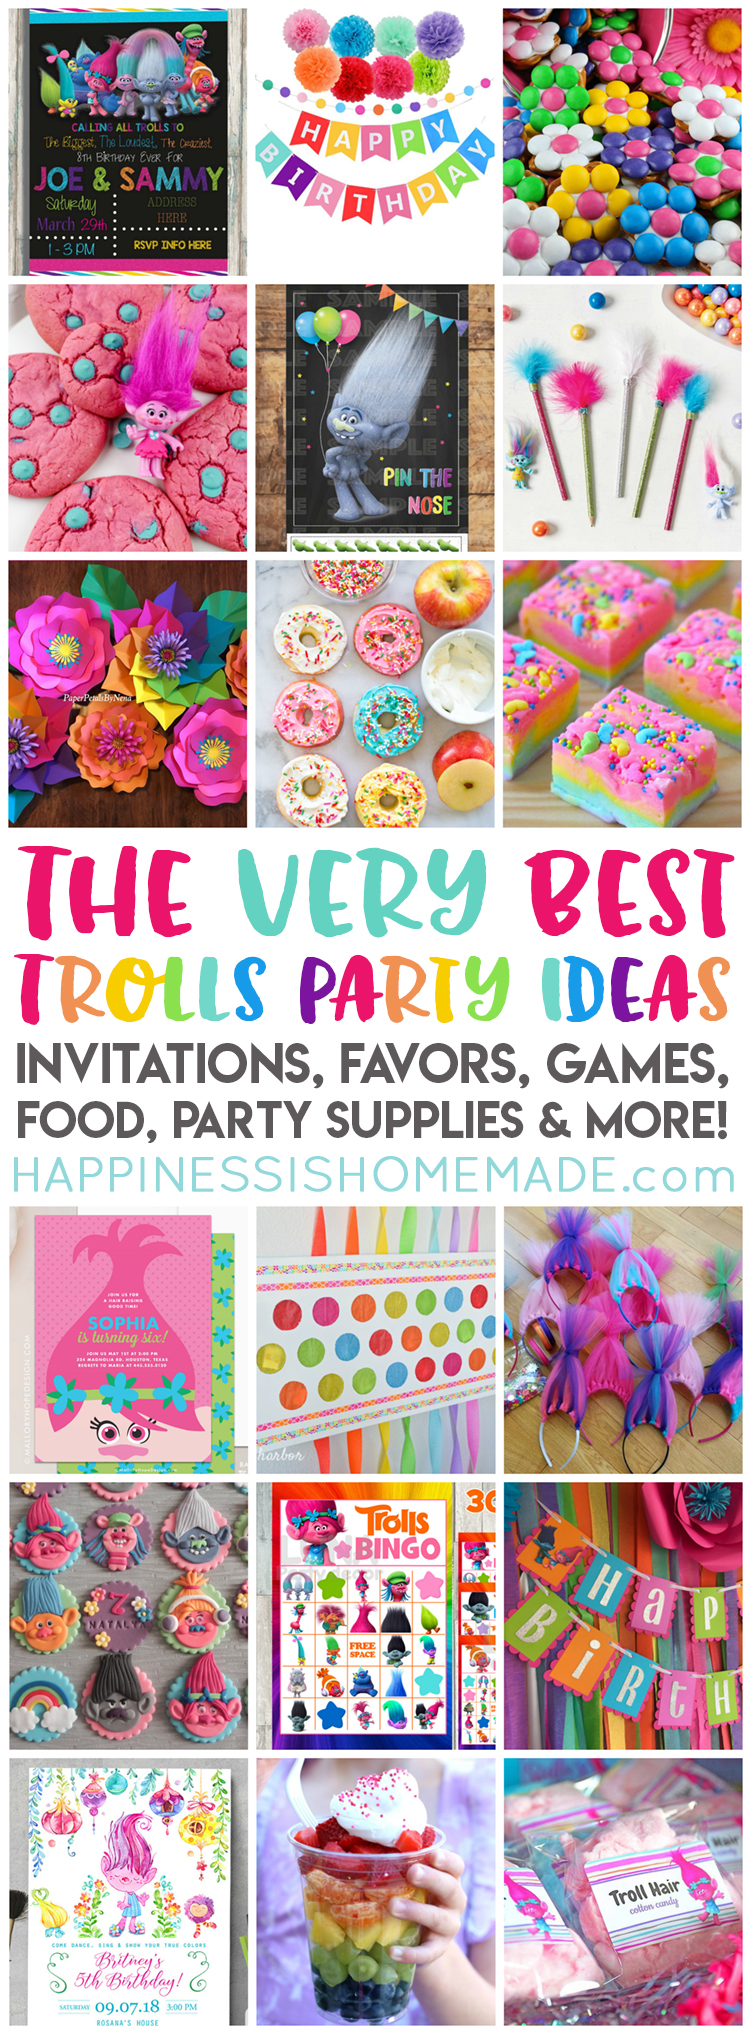 Planning a Trolls Birthday Party? We've got you covered with the best Trolls Party Ideas - Trolls party supplies, party favors, invitations, decorations, games, and more! We make your party planning easy peasy!